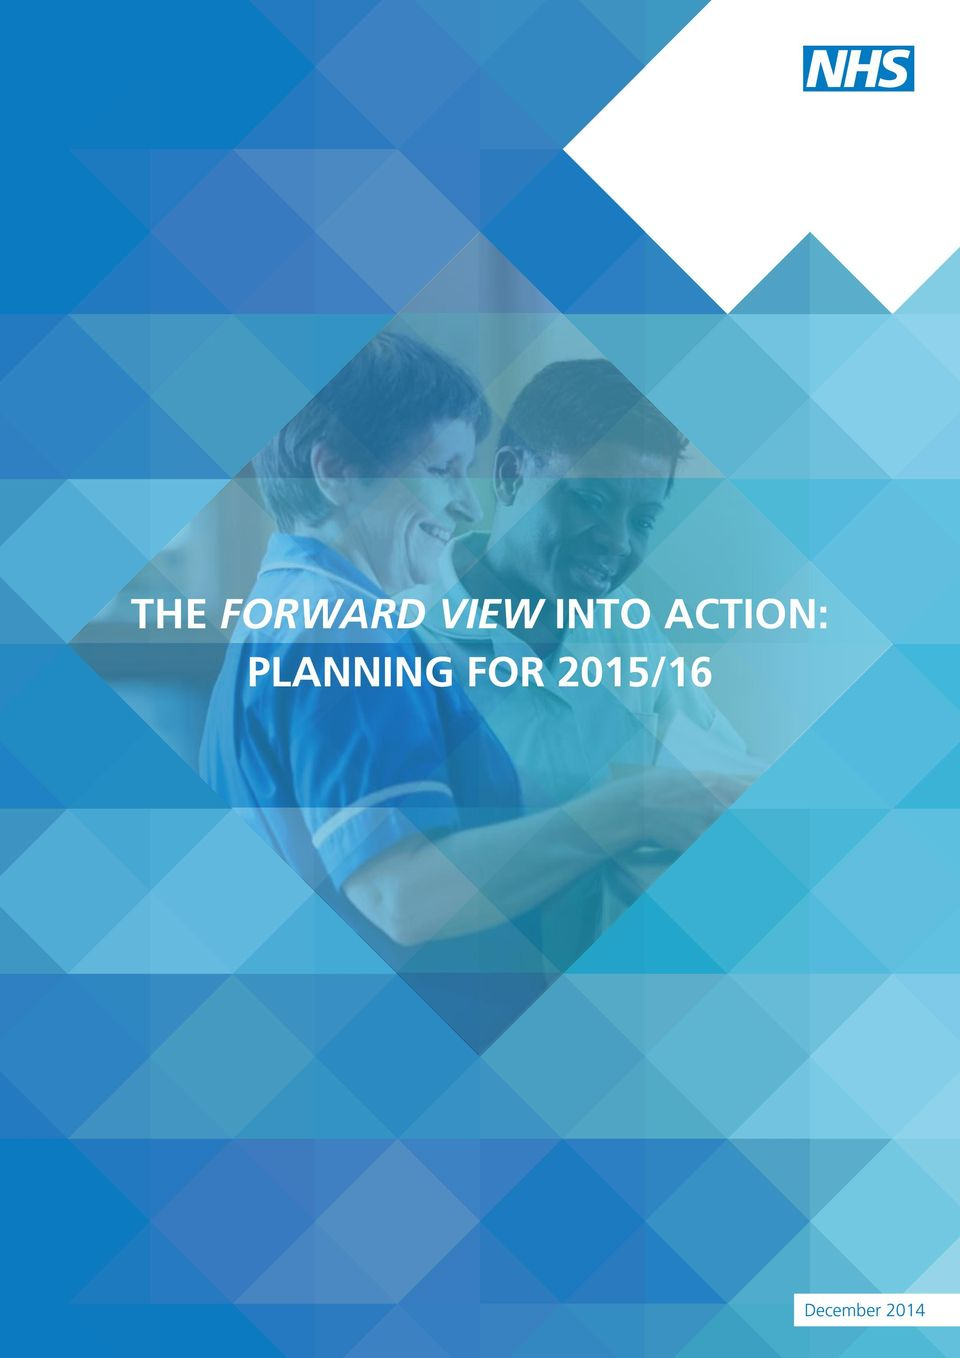 ACTION: PLANNING